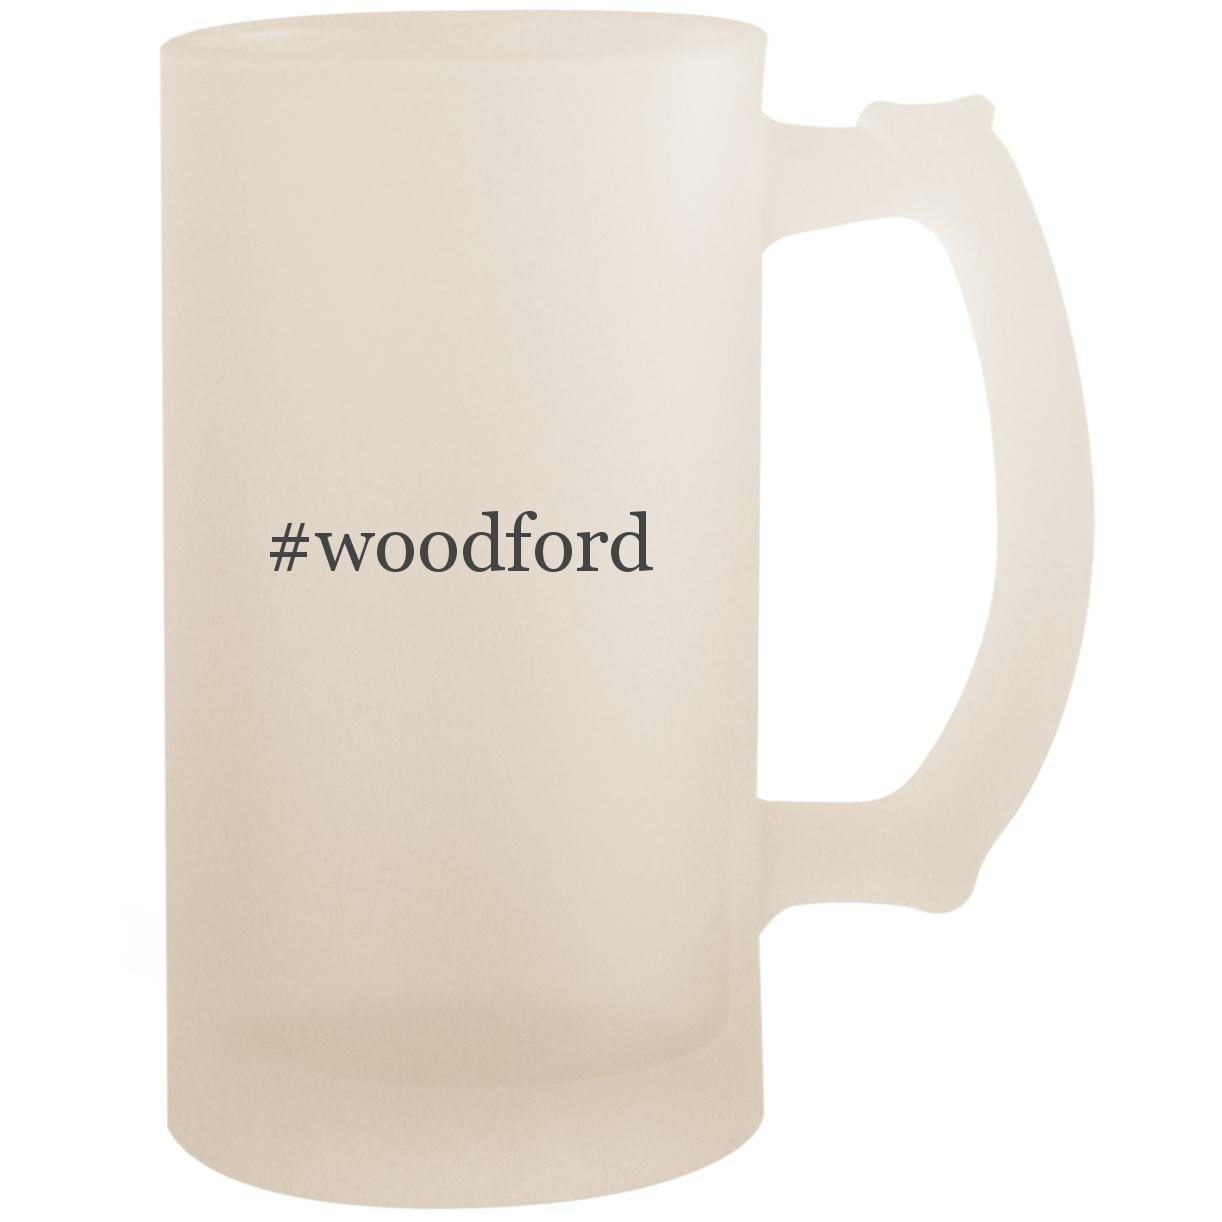 #woodford - 16oz Glass Frosted Beer Stein Mug, Frosted